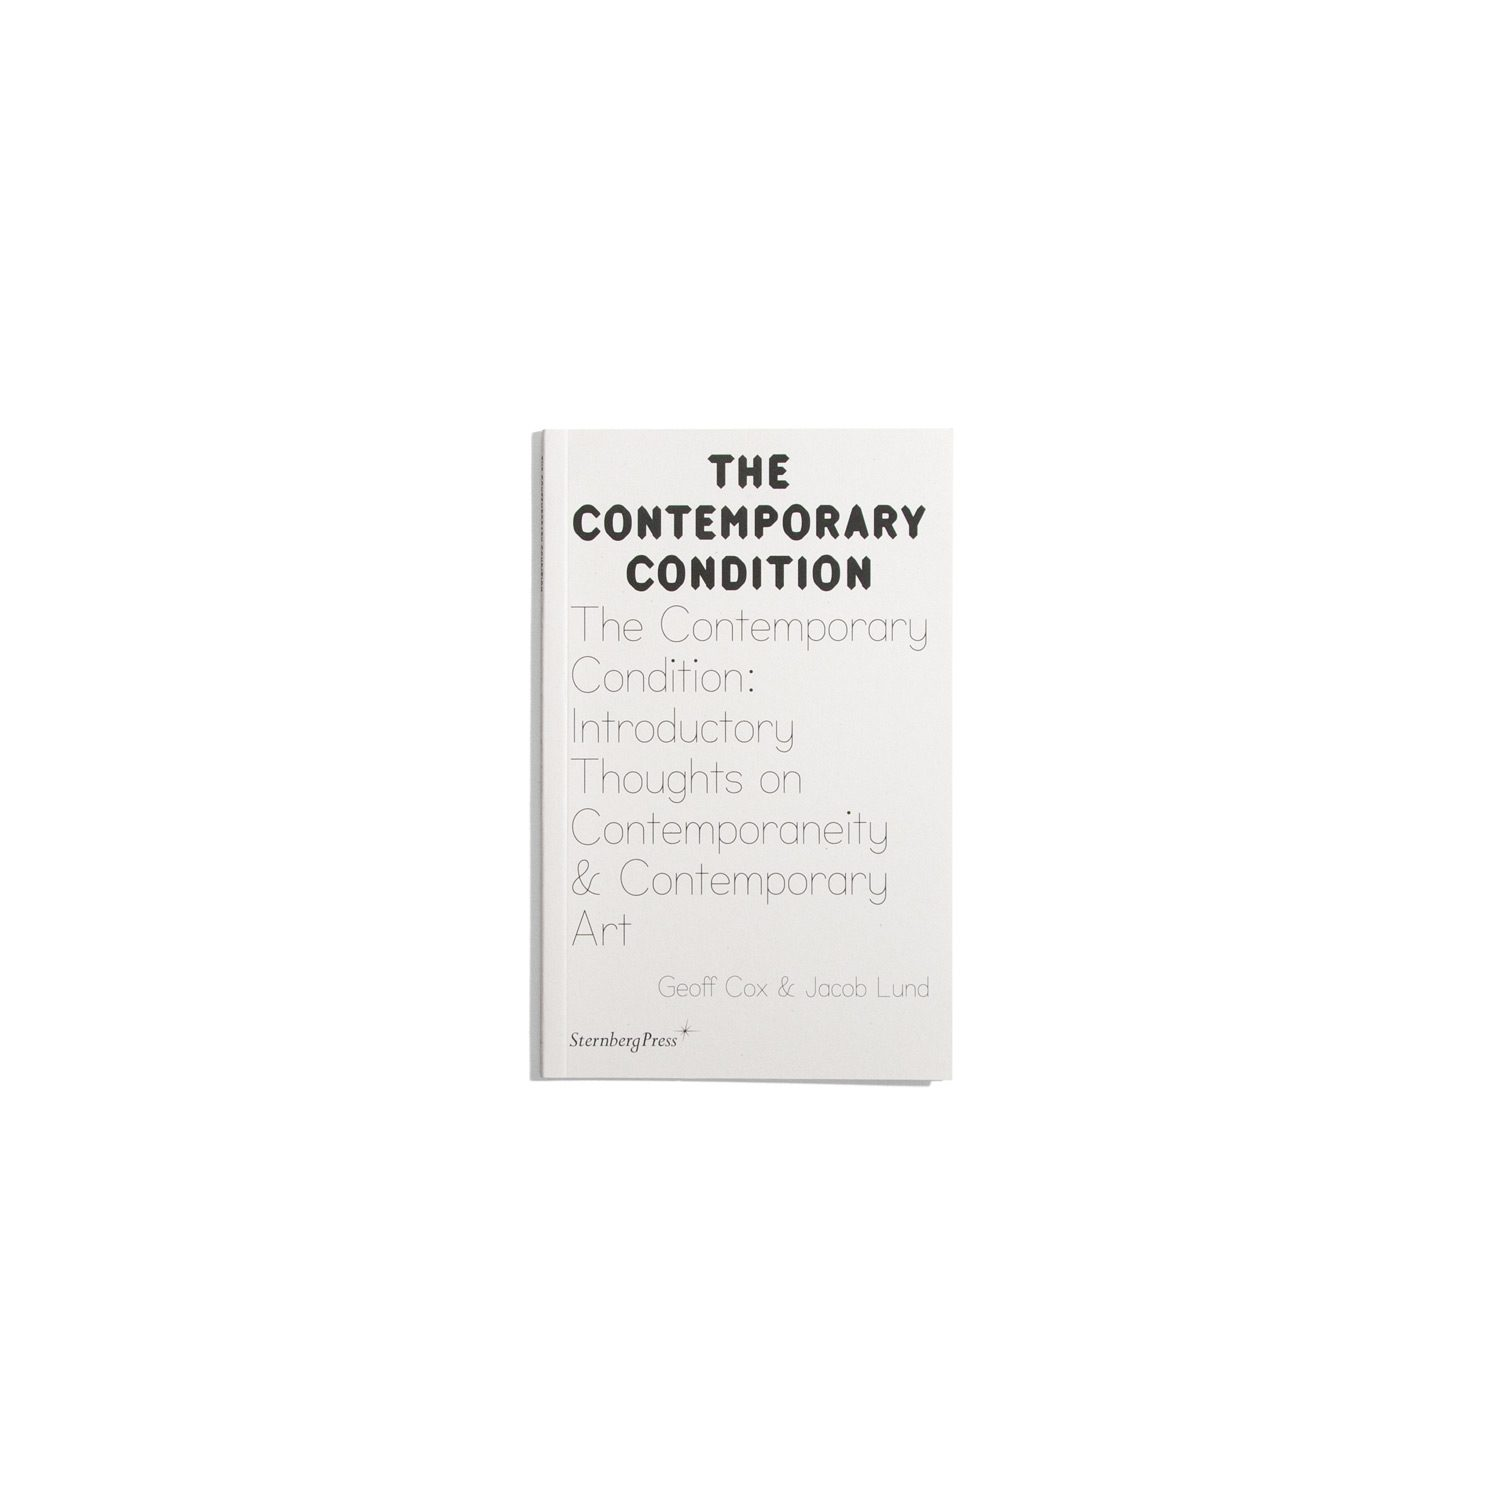 The Contemporary Condition - Introductory Thoughts